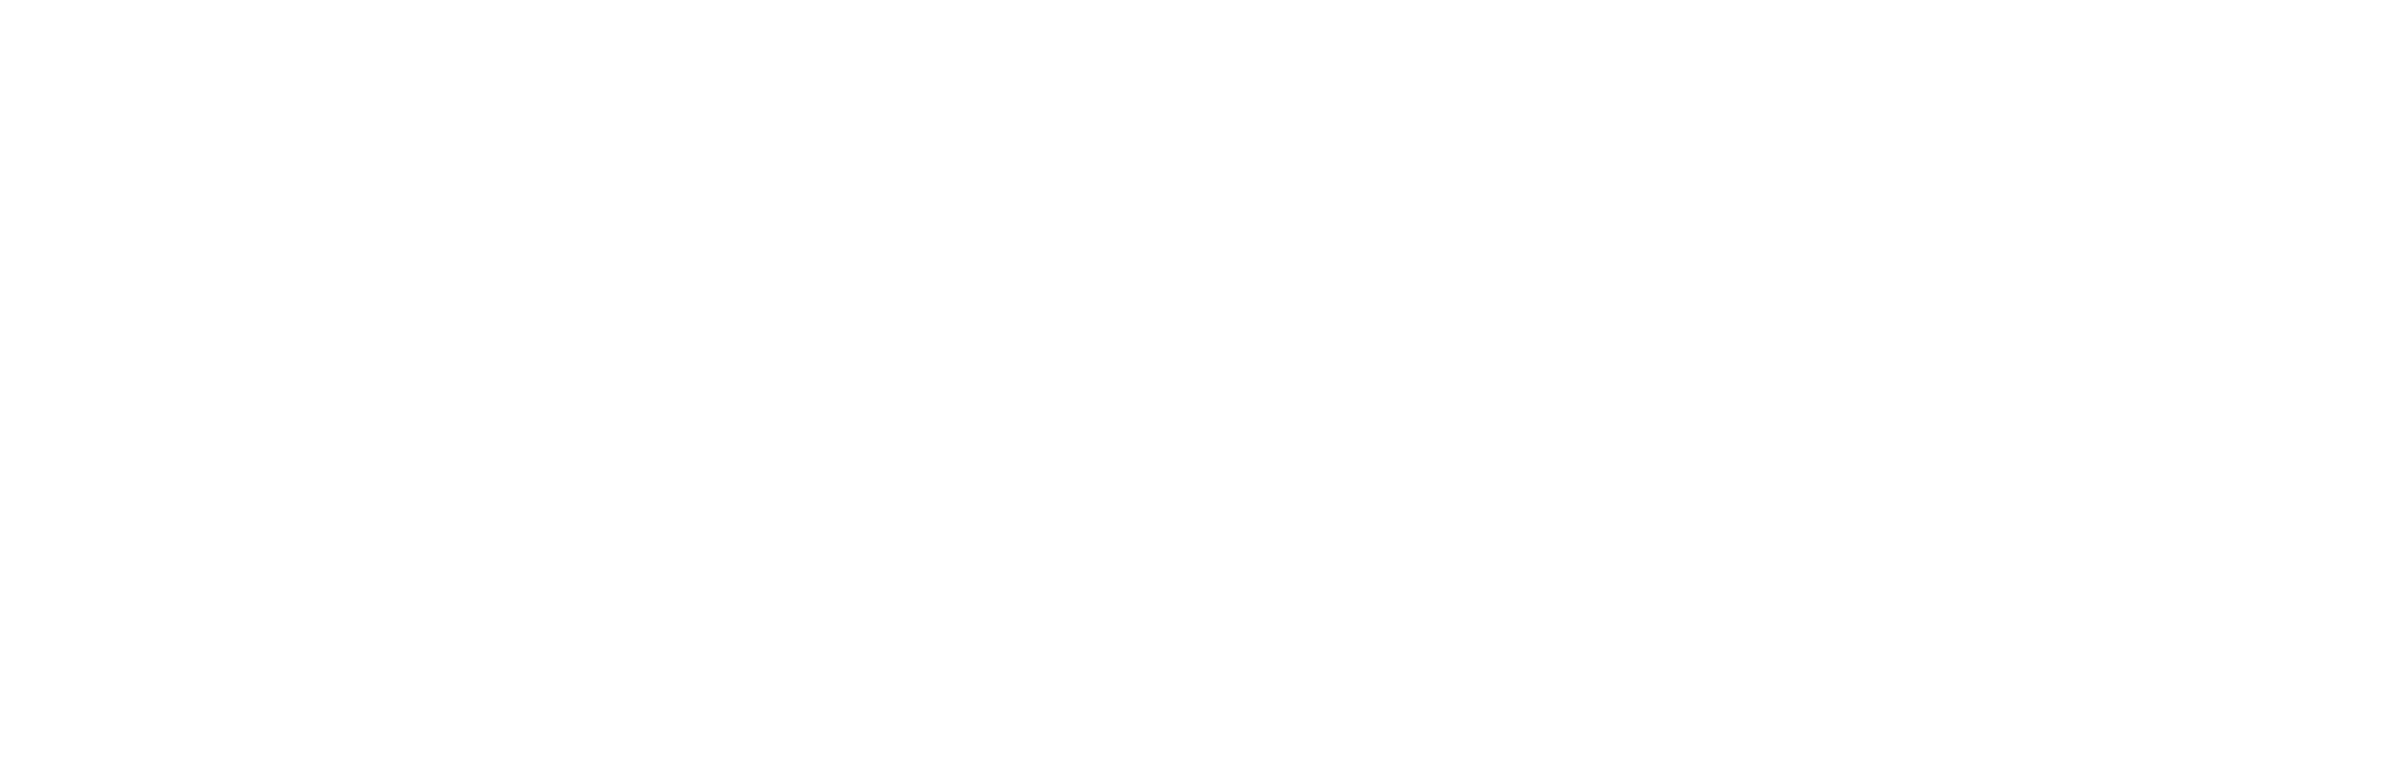 The Gospel Music Association